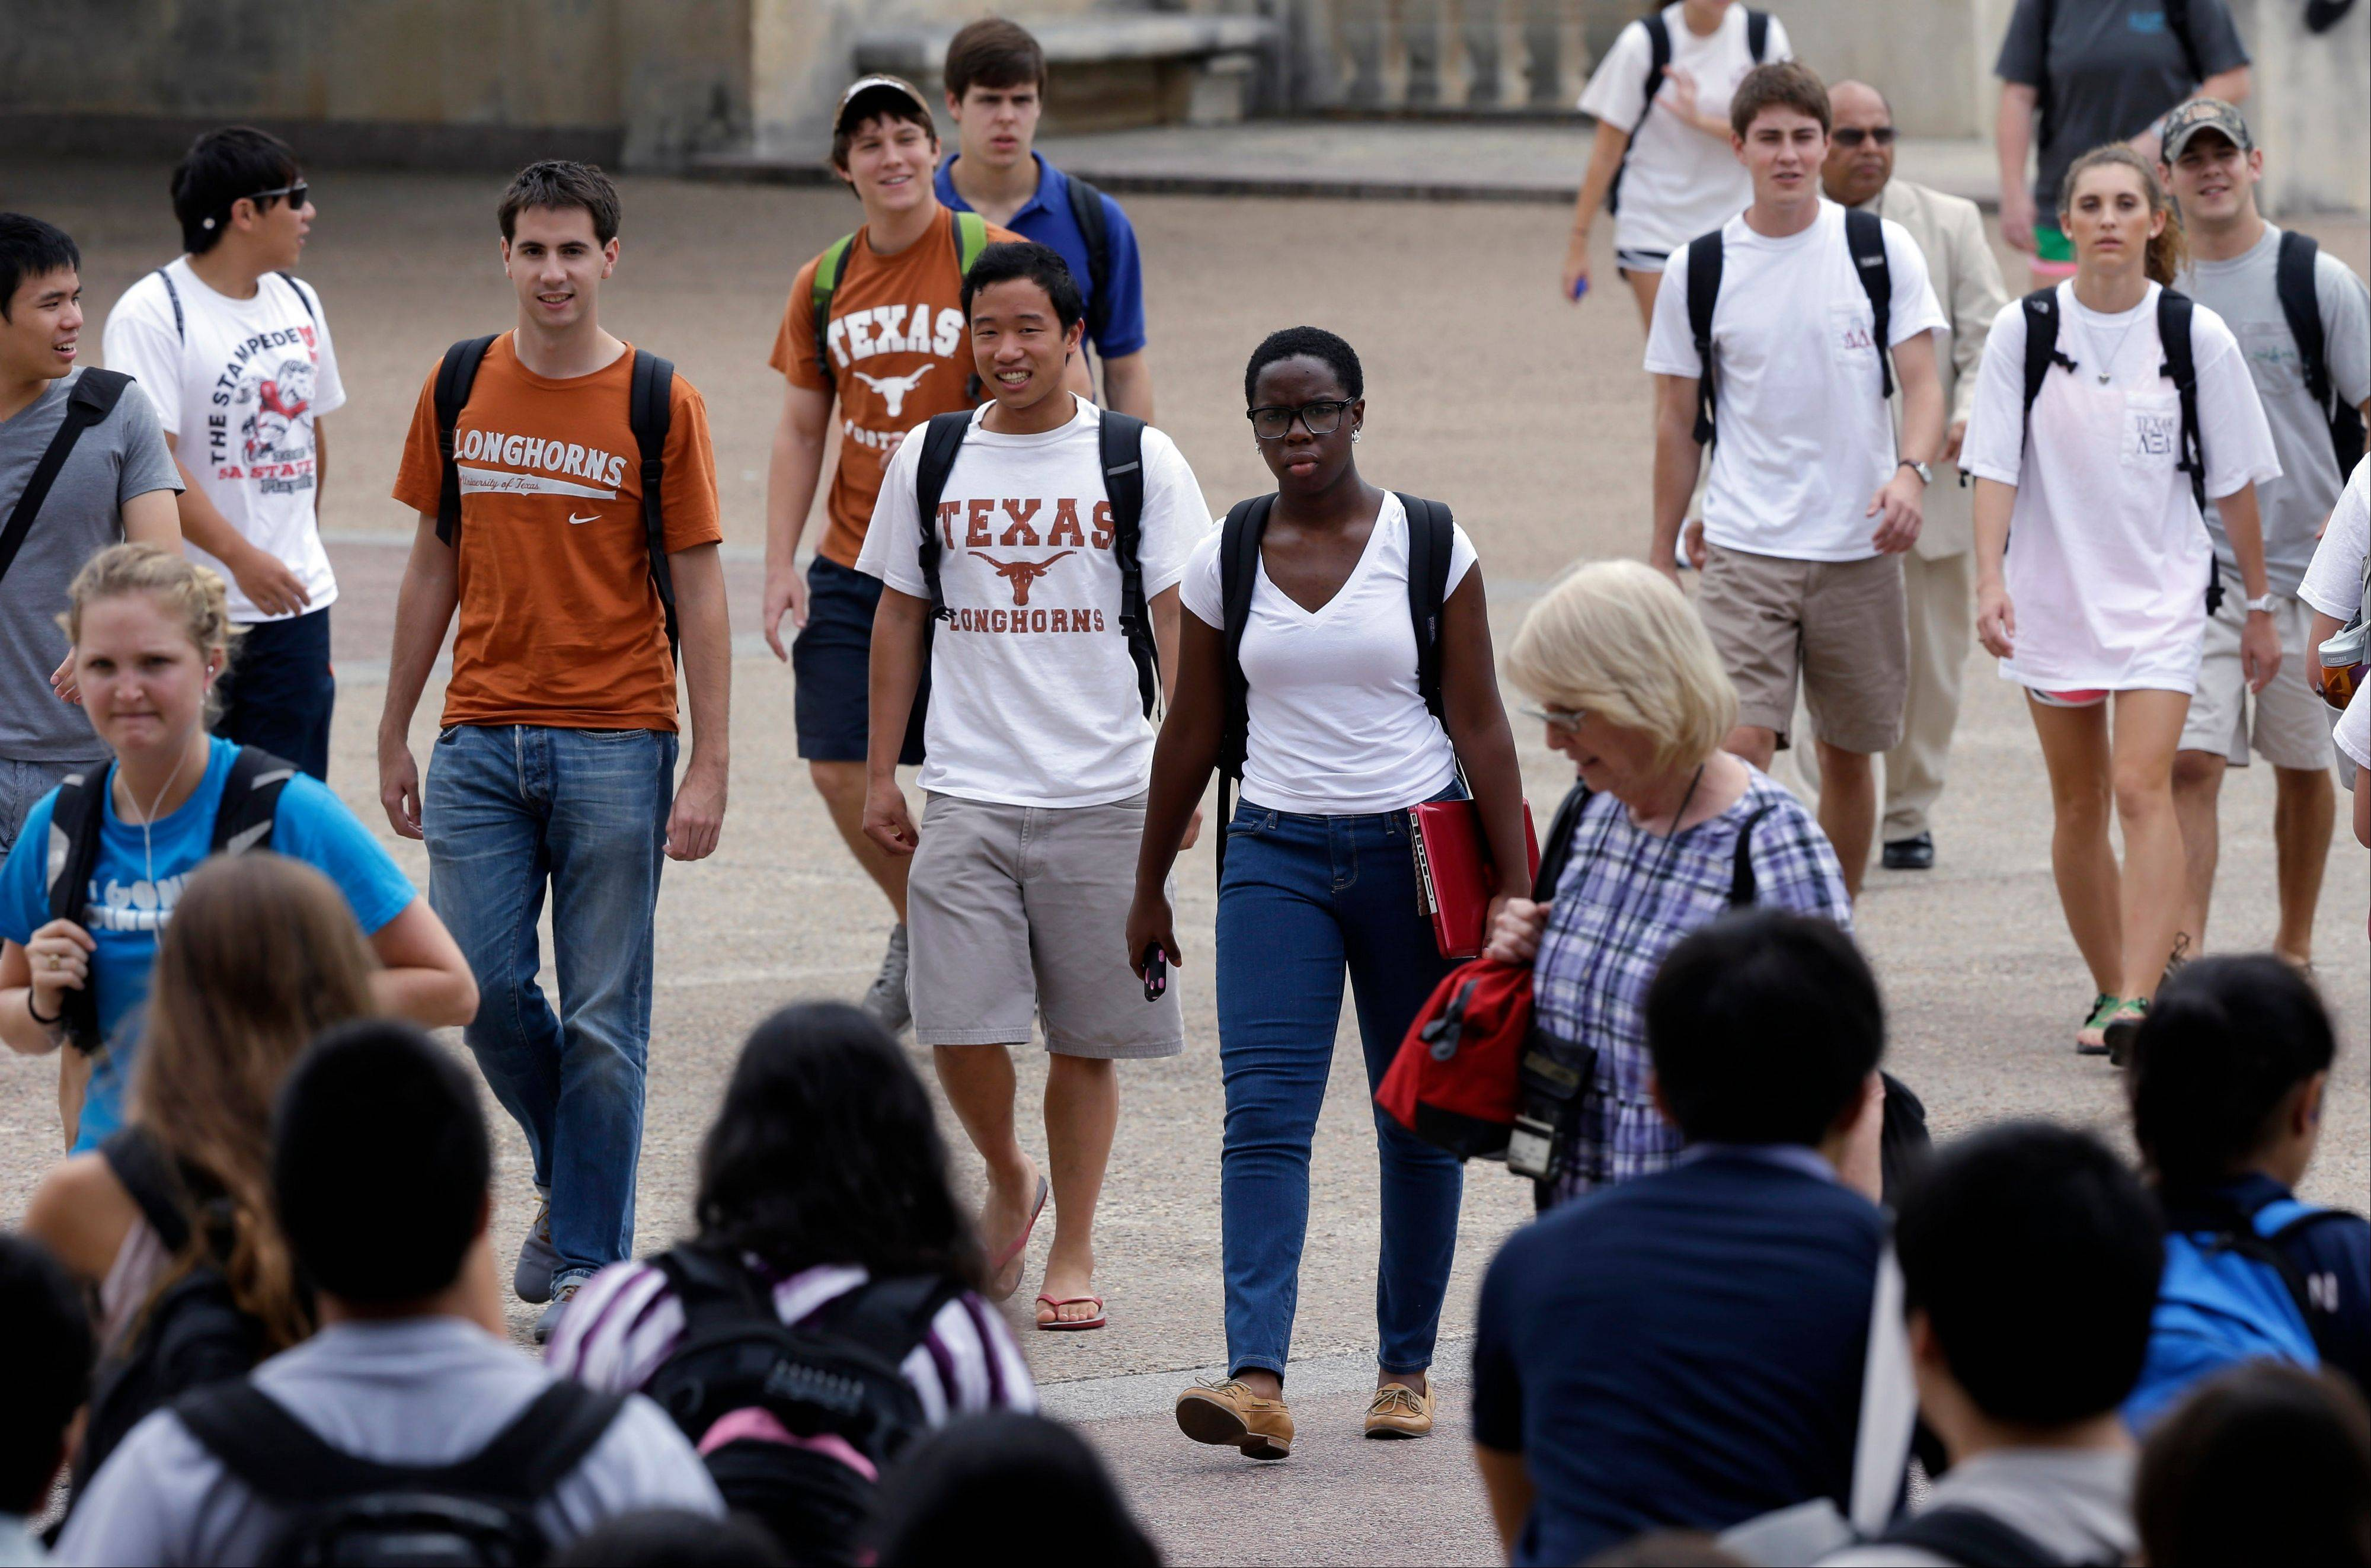 Students walk through the University of Texas at Austin campus in Austin, Texas. This giant flagship campus � once slow to integrate � is now among the most diverse the country.